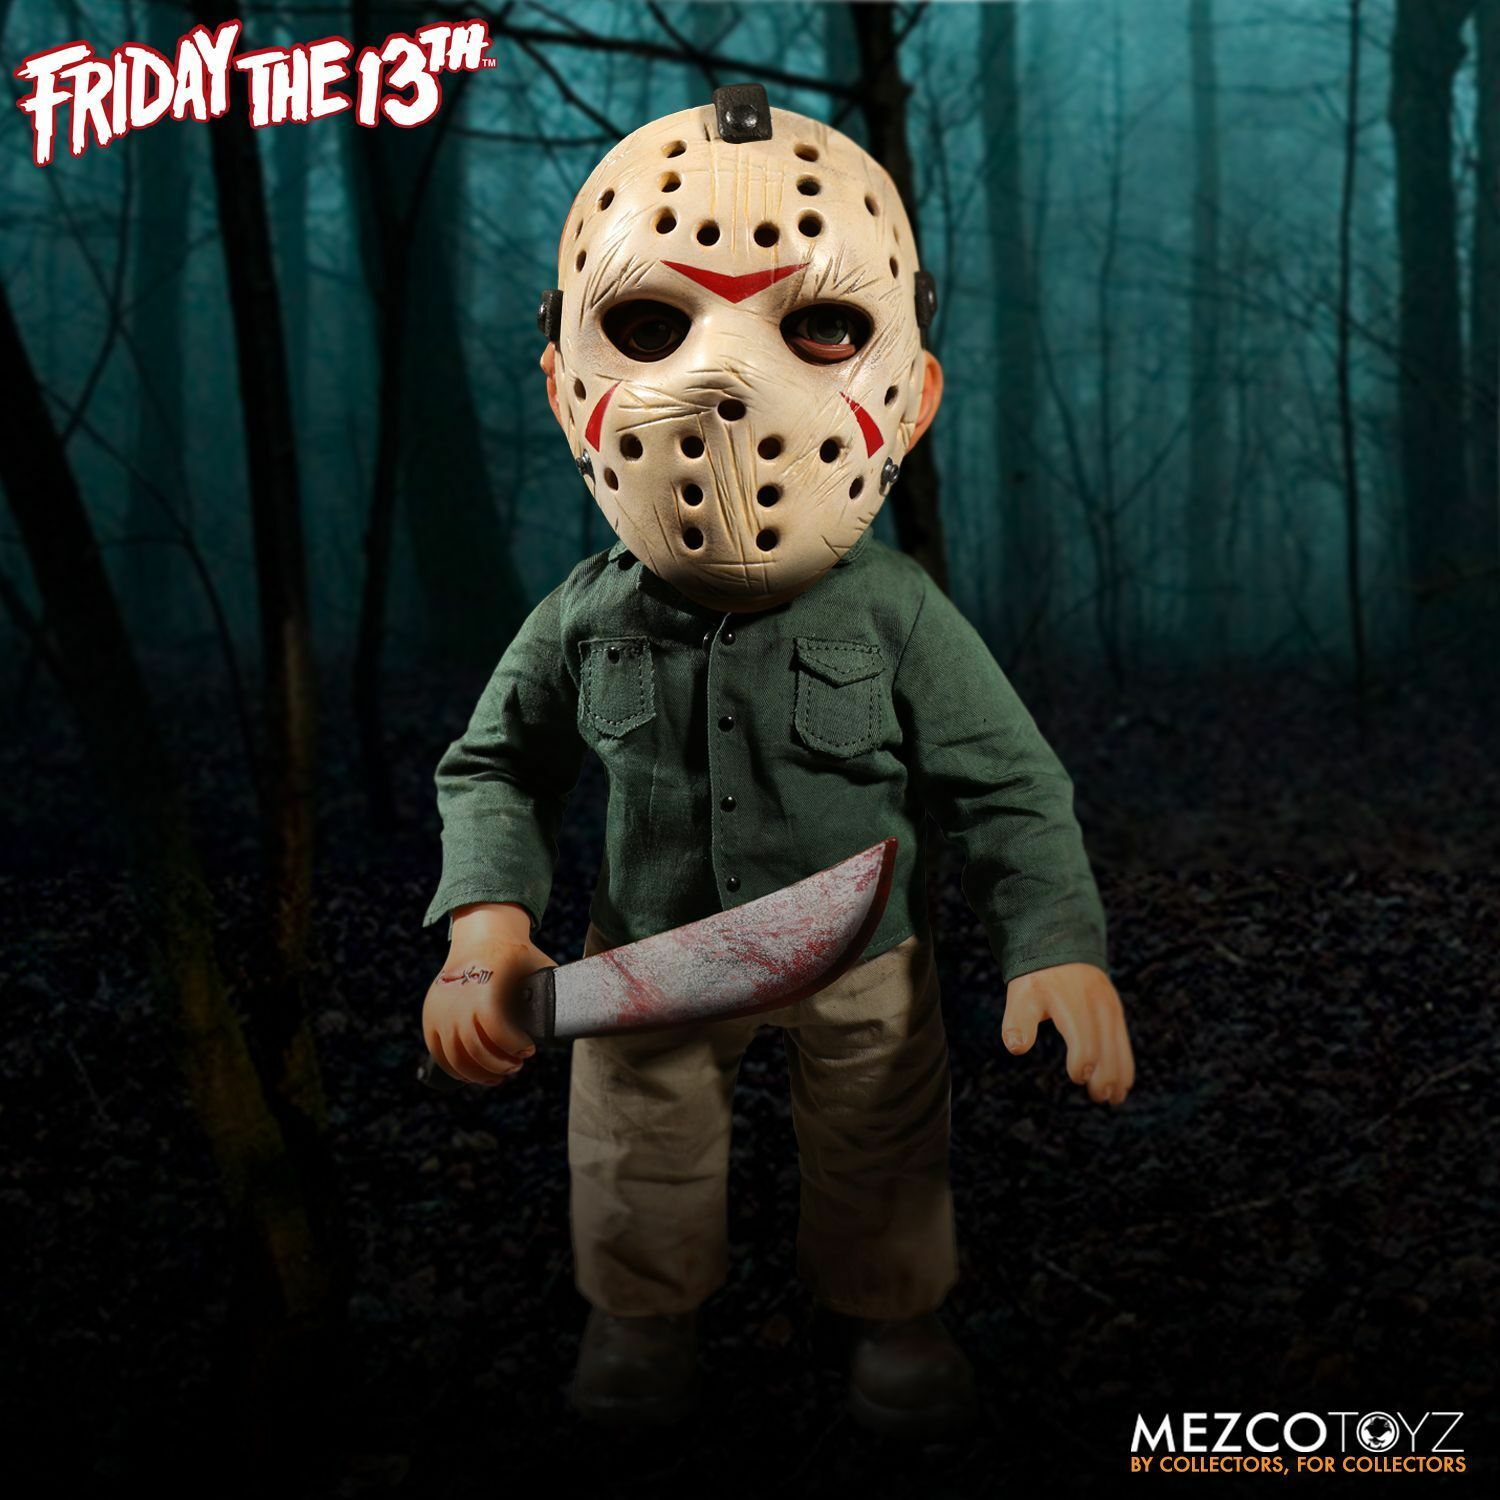 Friday the 13th Mega Jason Voorhees with Sound 15 Inch by Mezco SLIGHTLY DENTED